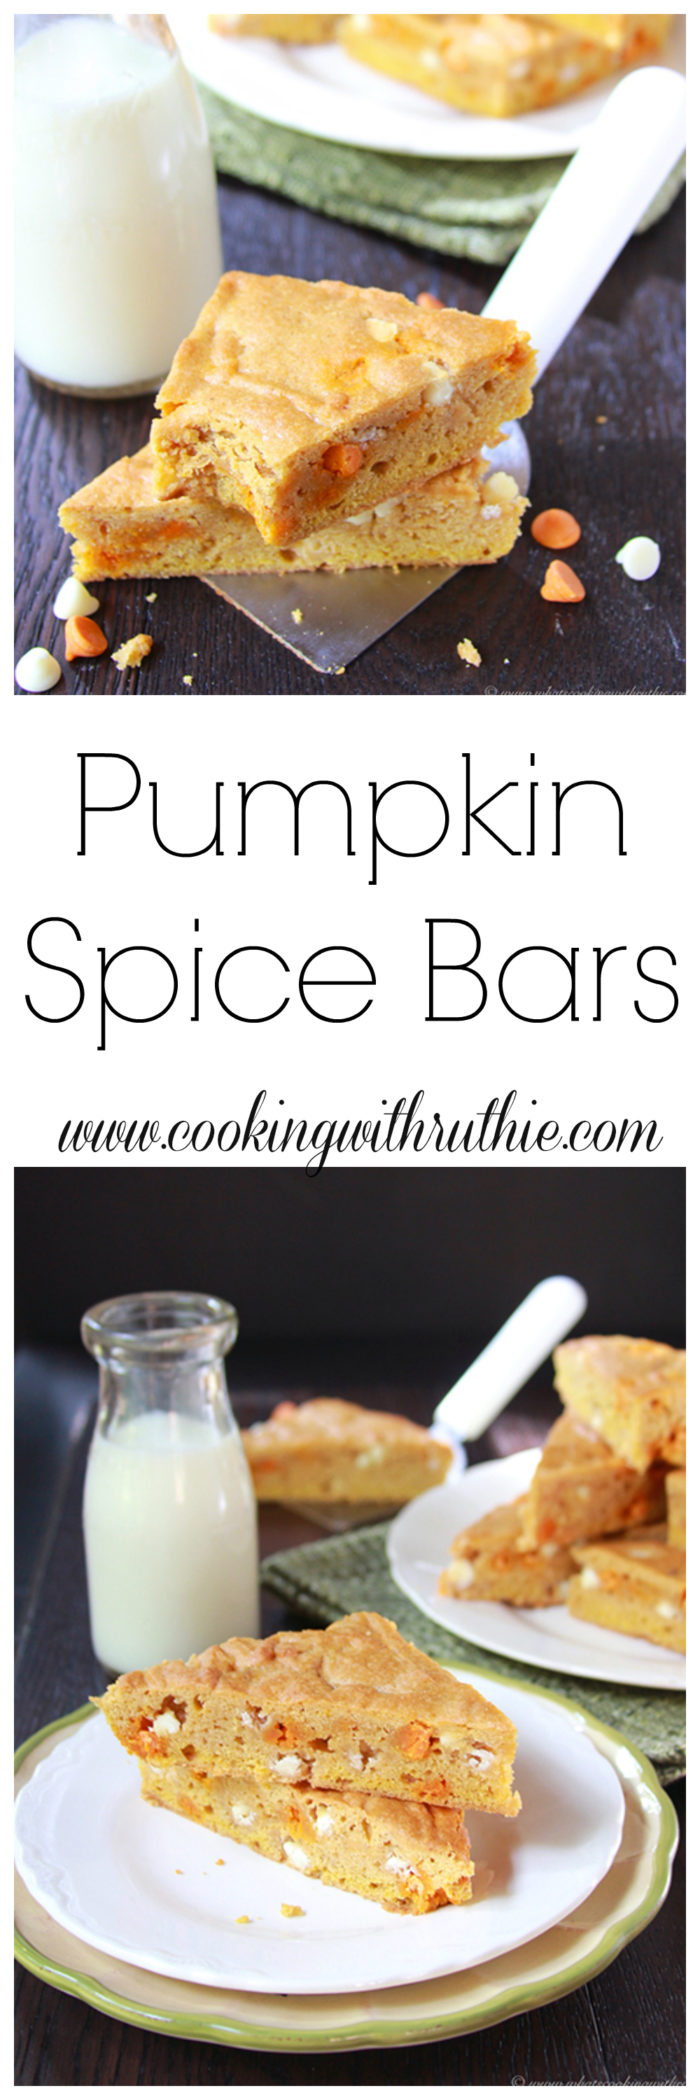 Pumpkin Spice Bars on www.cookingwithruthie.com will rock your world in every way!! YUM. If you're like me and wait for the autumn months just to enjoy amazing pumpkin-inspired recipes, then you'll be in heaven with this bar!